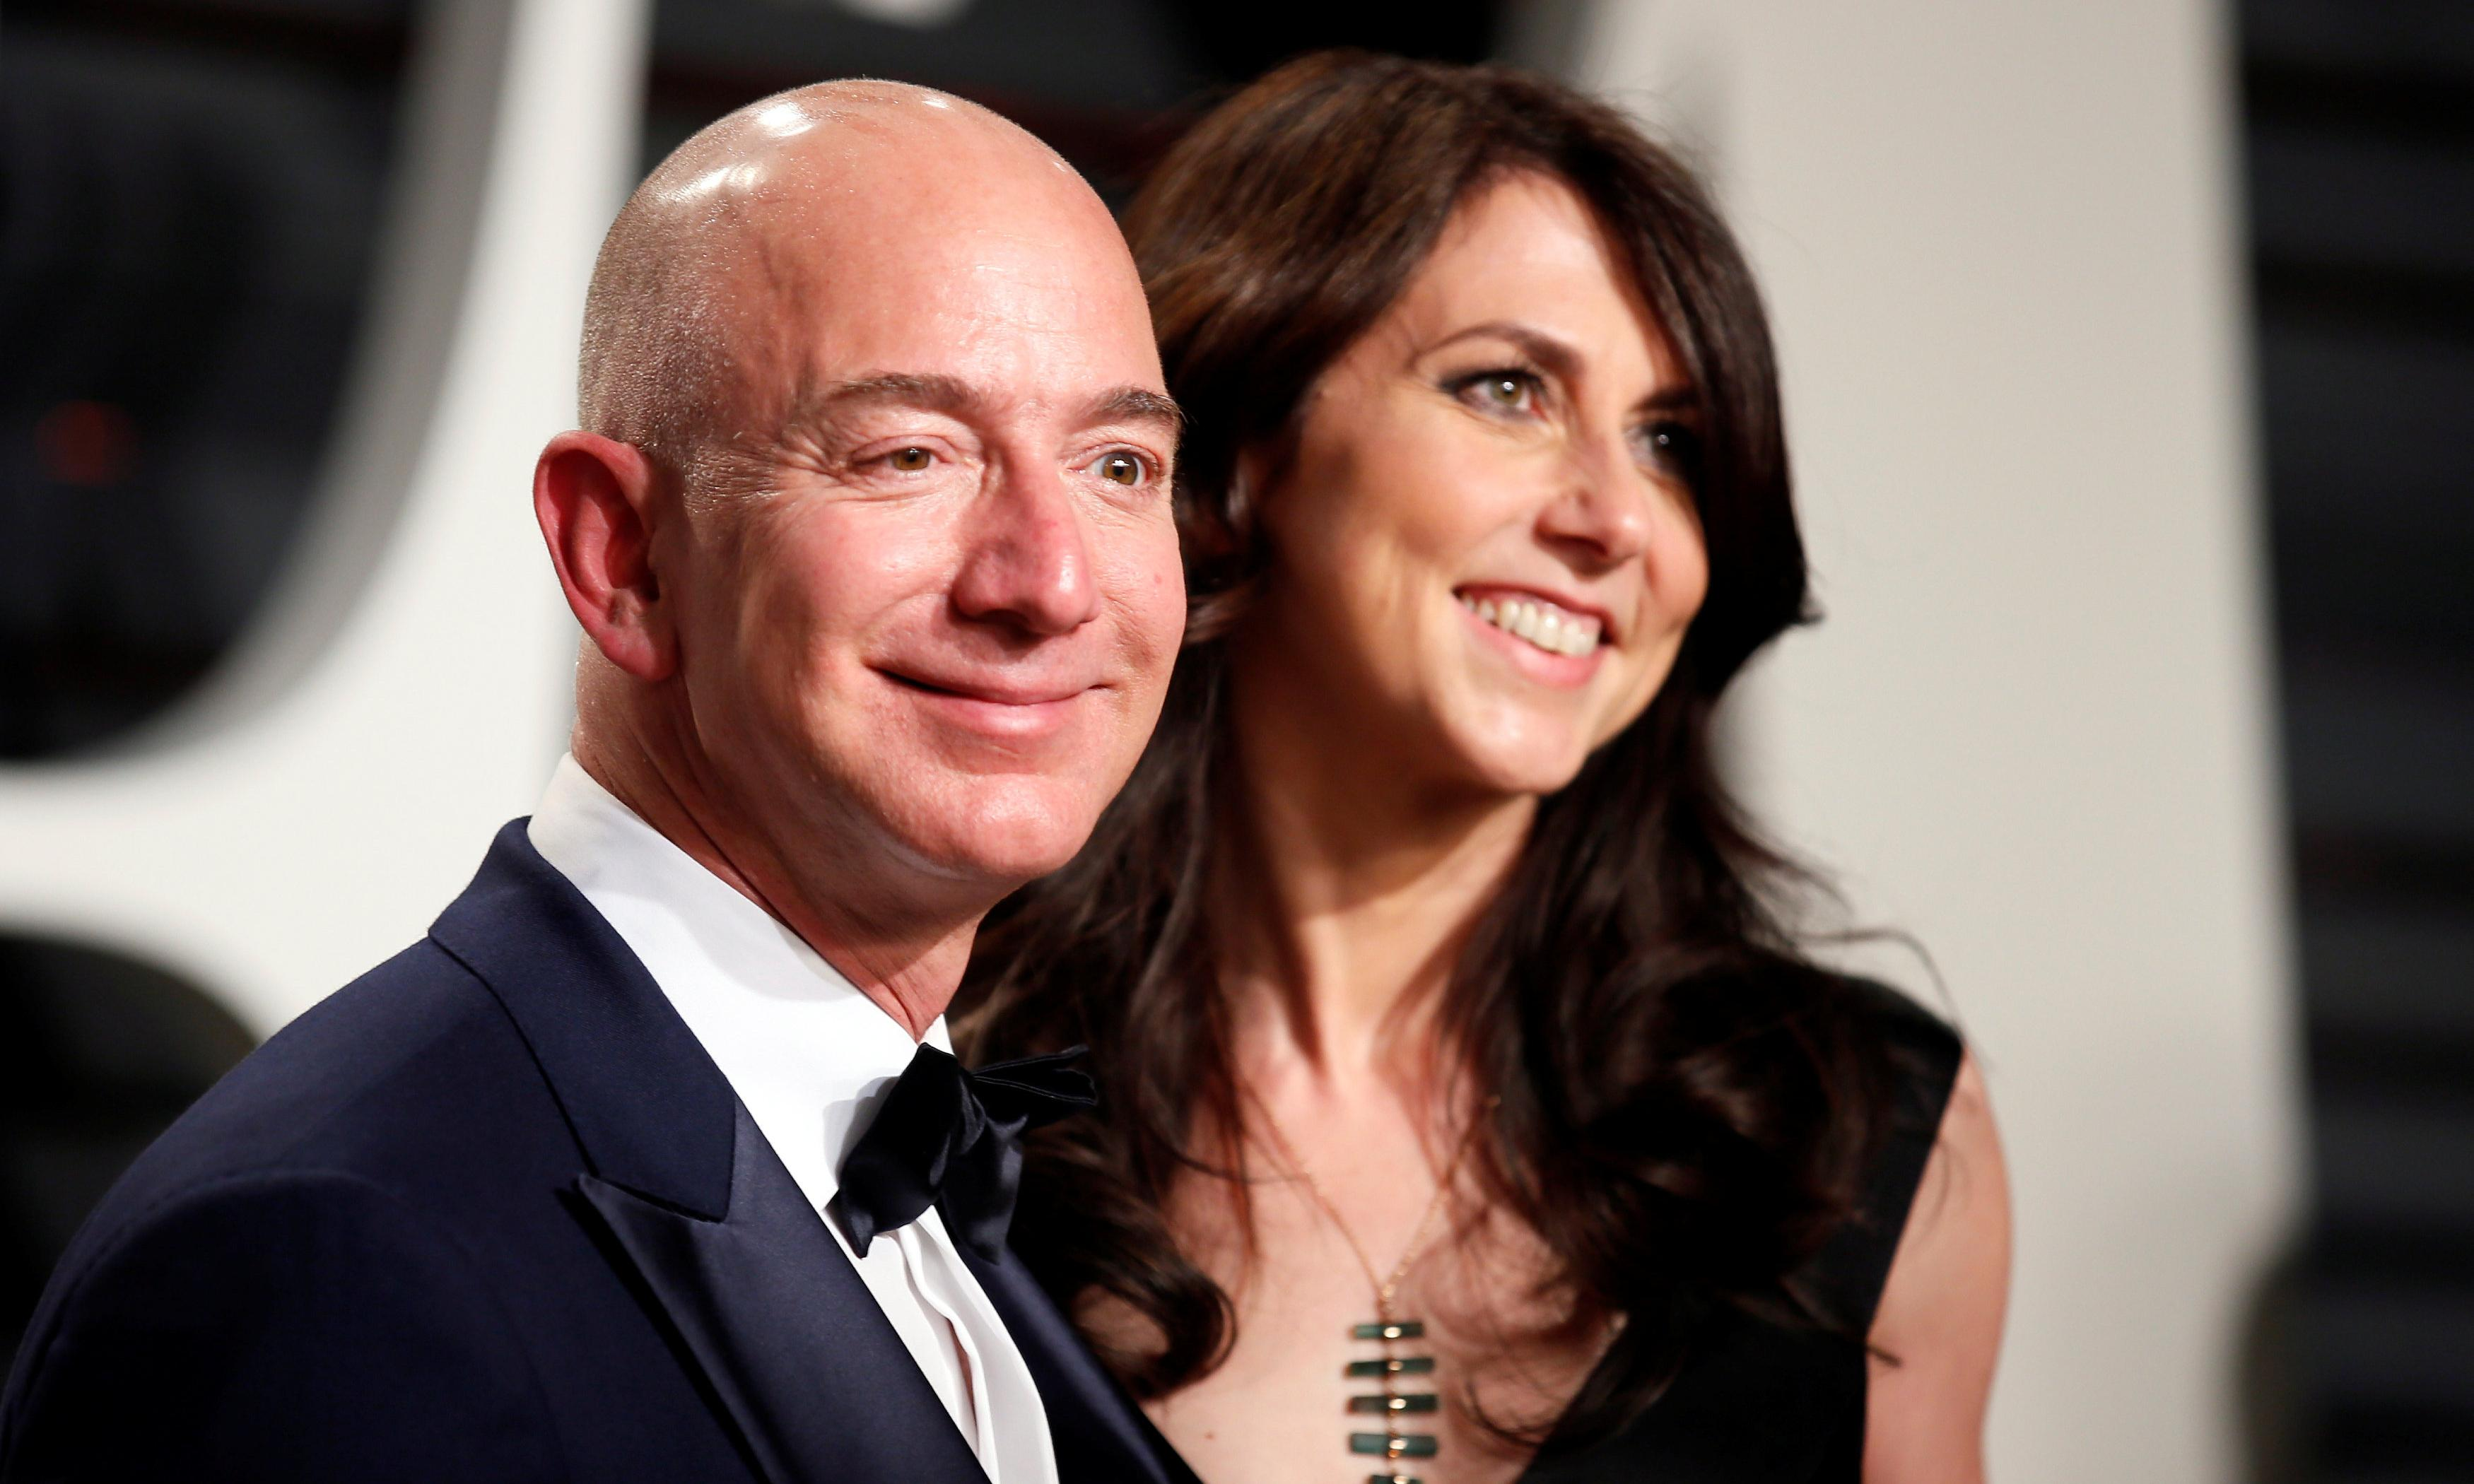 Amazon's Jeff Bezos pays out $38bn in divorce settlement